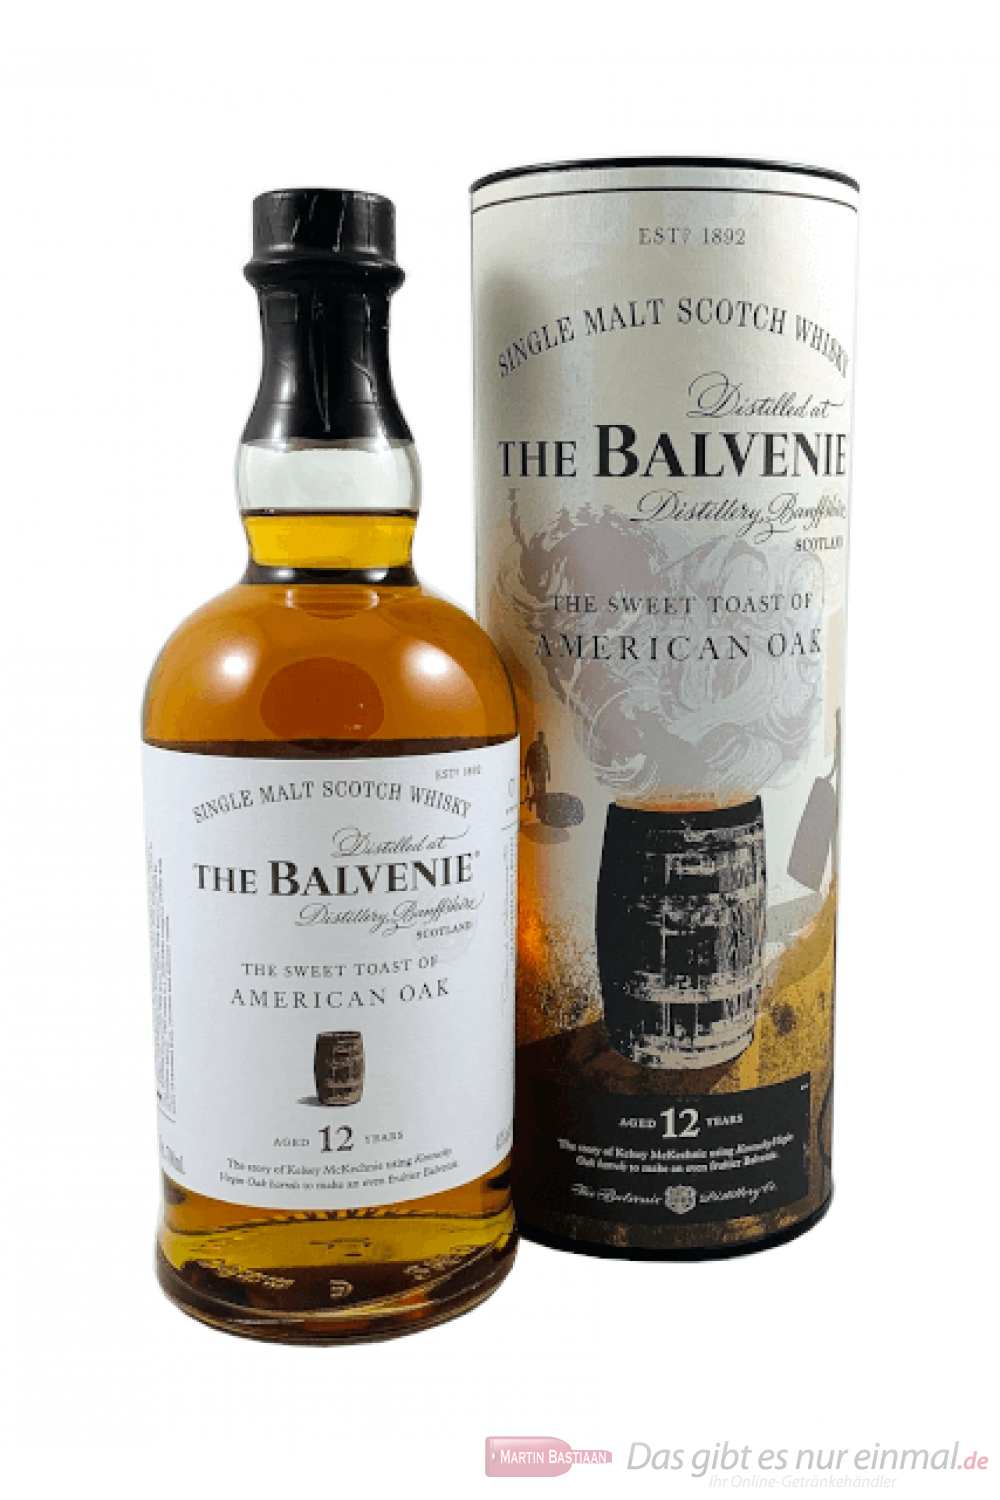 The Balvenie 12 Years The Sweet Toast of American Oak Whisky 0,7l